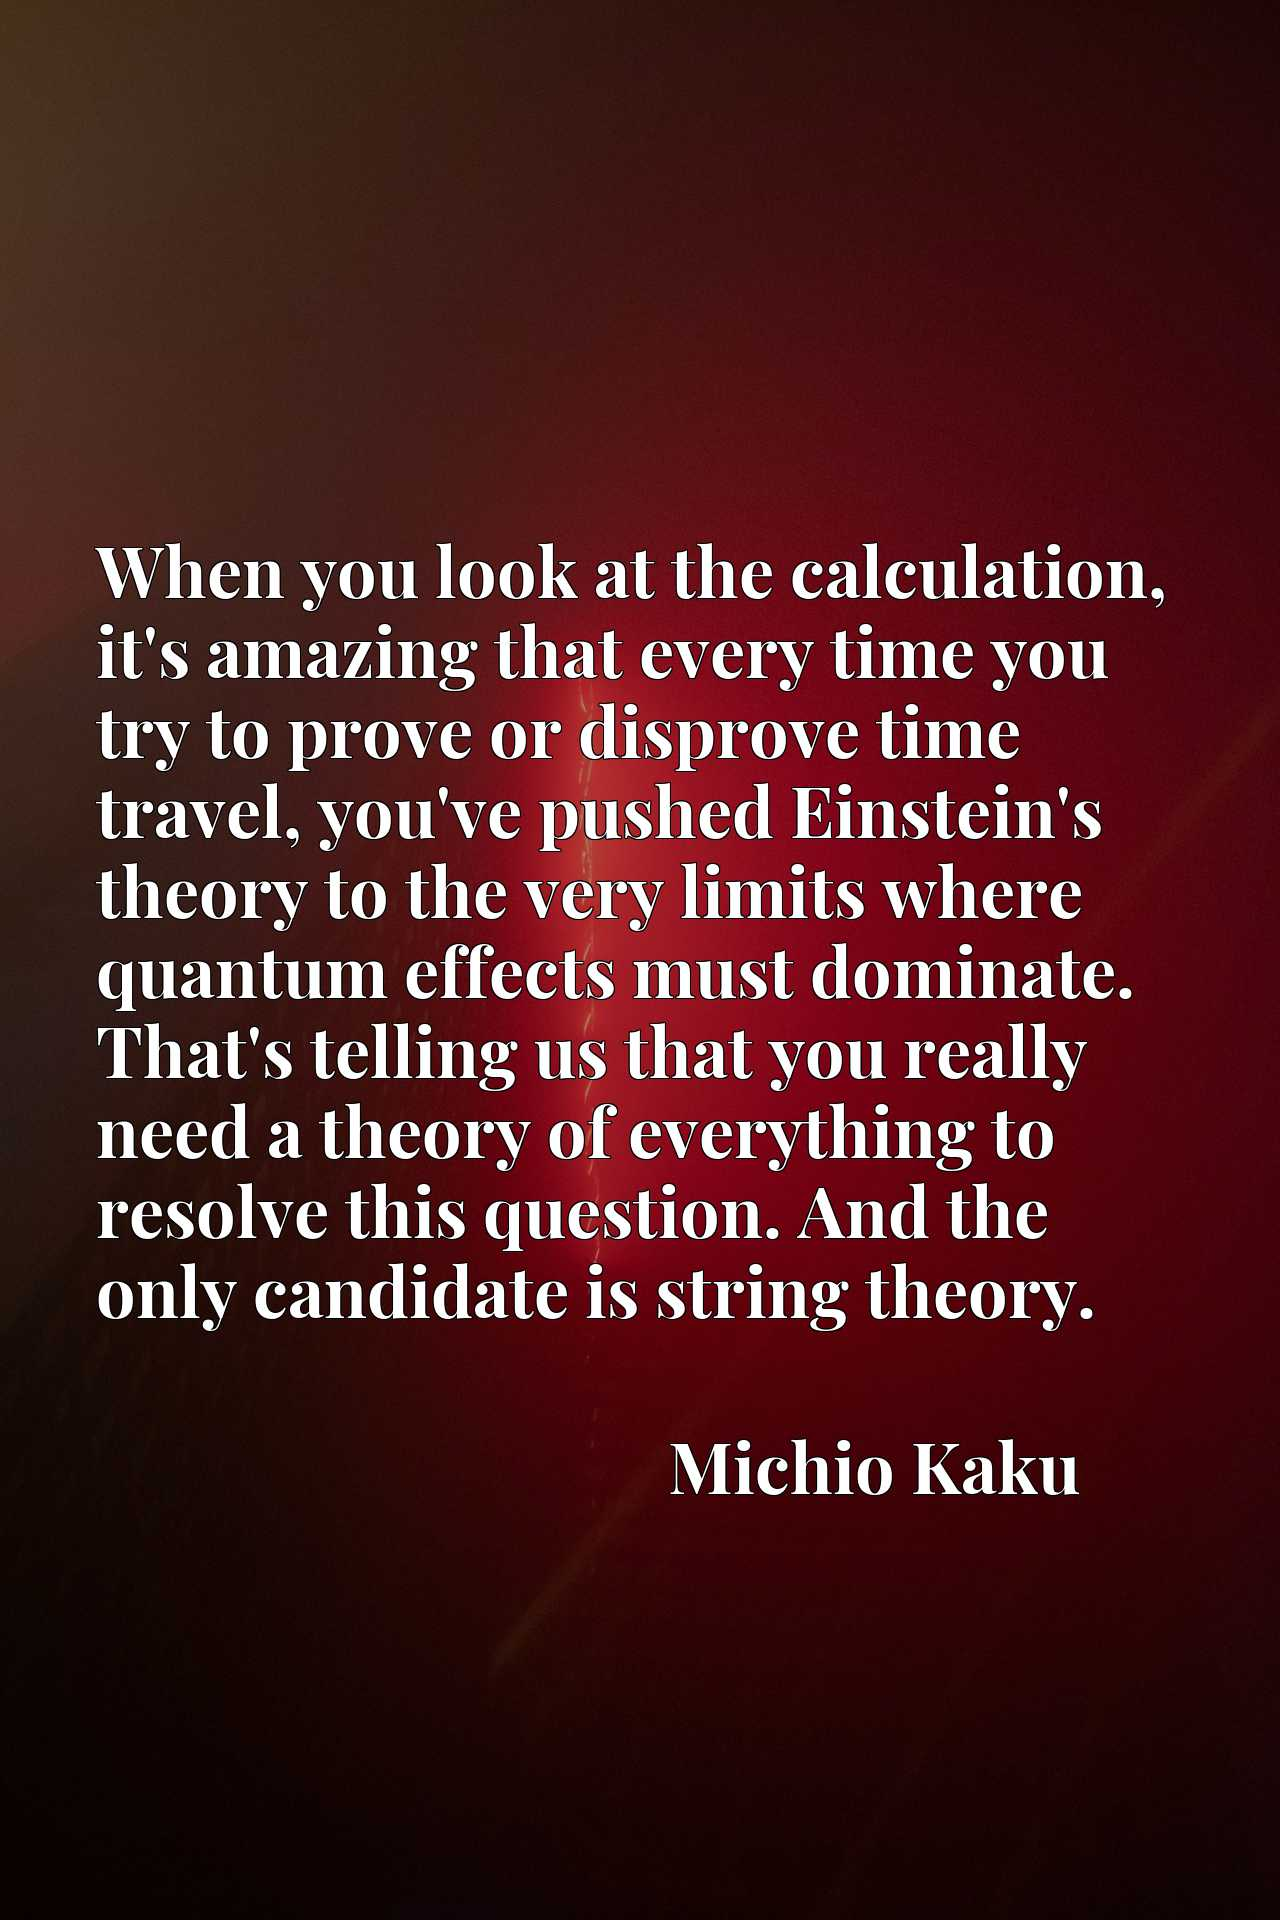 When you look at the calculation, it's amazing that every time you try to prove or disprove time travel, you've pushed Einstein's theory to the very limits where quantum effects must dominate. That's telling us that you really need a theory of everything to resolve this question. And the only candidate is string theory.